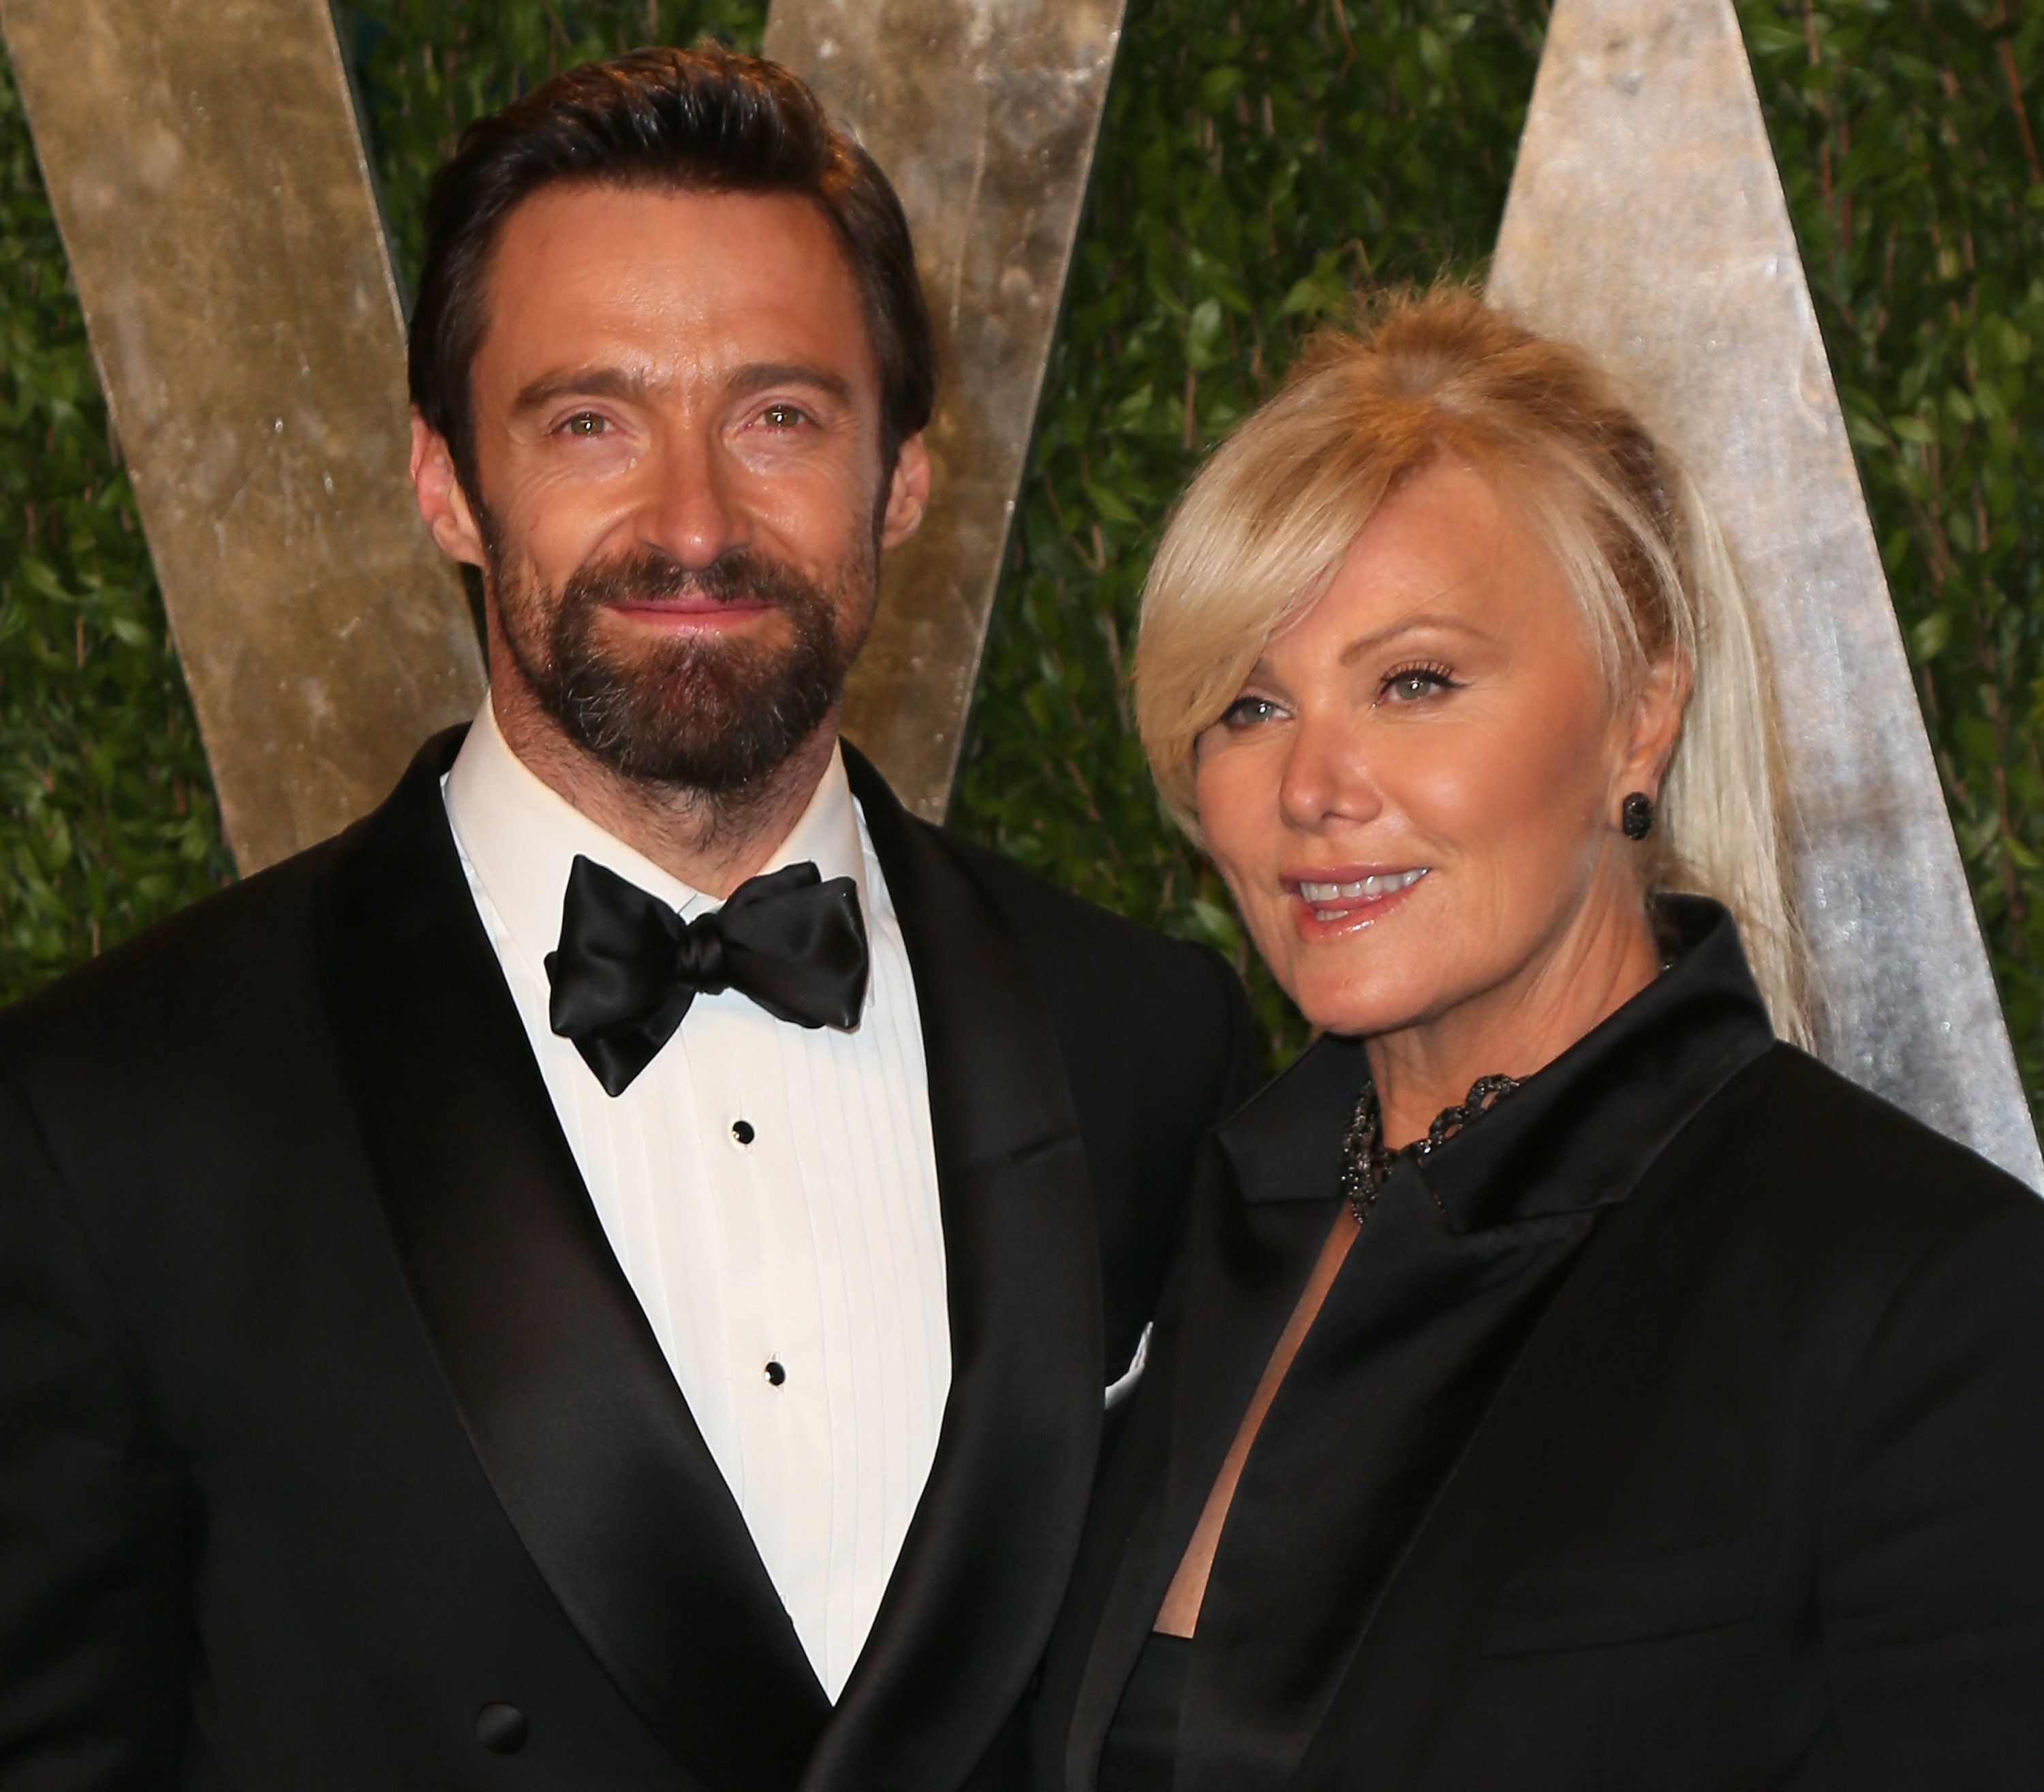 WEST HOLLYWOOD, CA - FEBRUARY 24:  Actor Hugh Jackman (L) and wife Deborra-Lee Furness attend the 2013 Vanity Fair Oscar Party at the Sunset Tower Hotel on February 24, 2013 in West Hollywood, California.  (Photo by David Livingston/Getty Images)